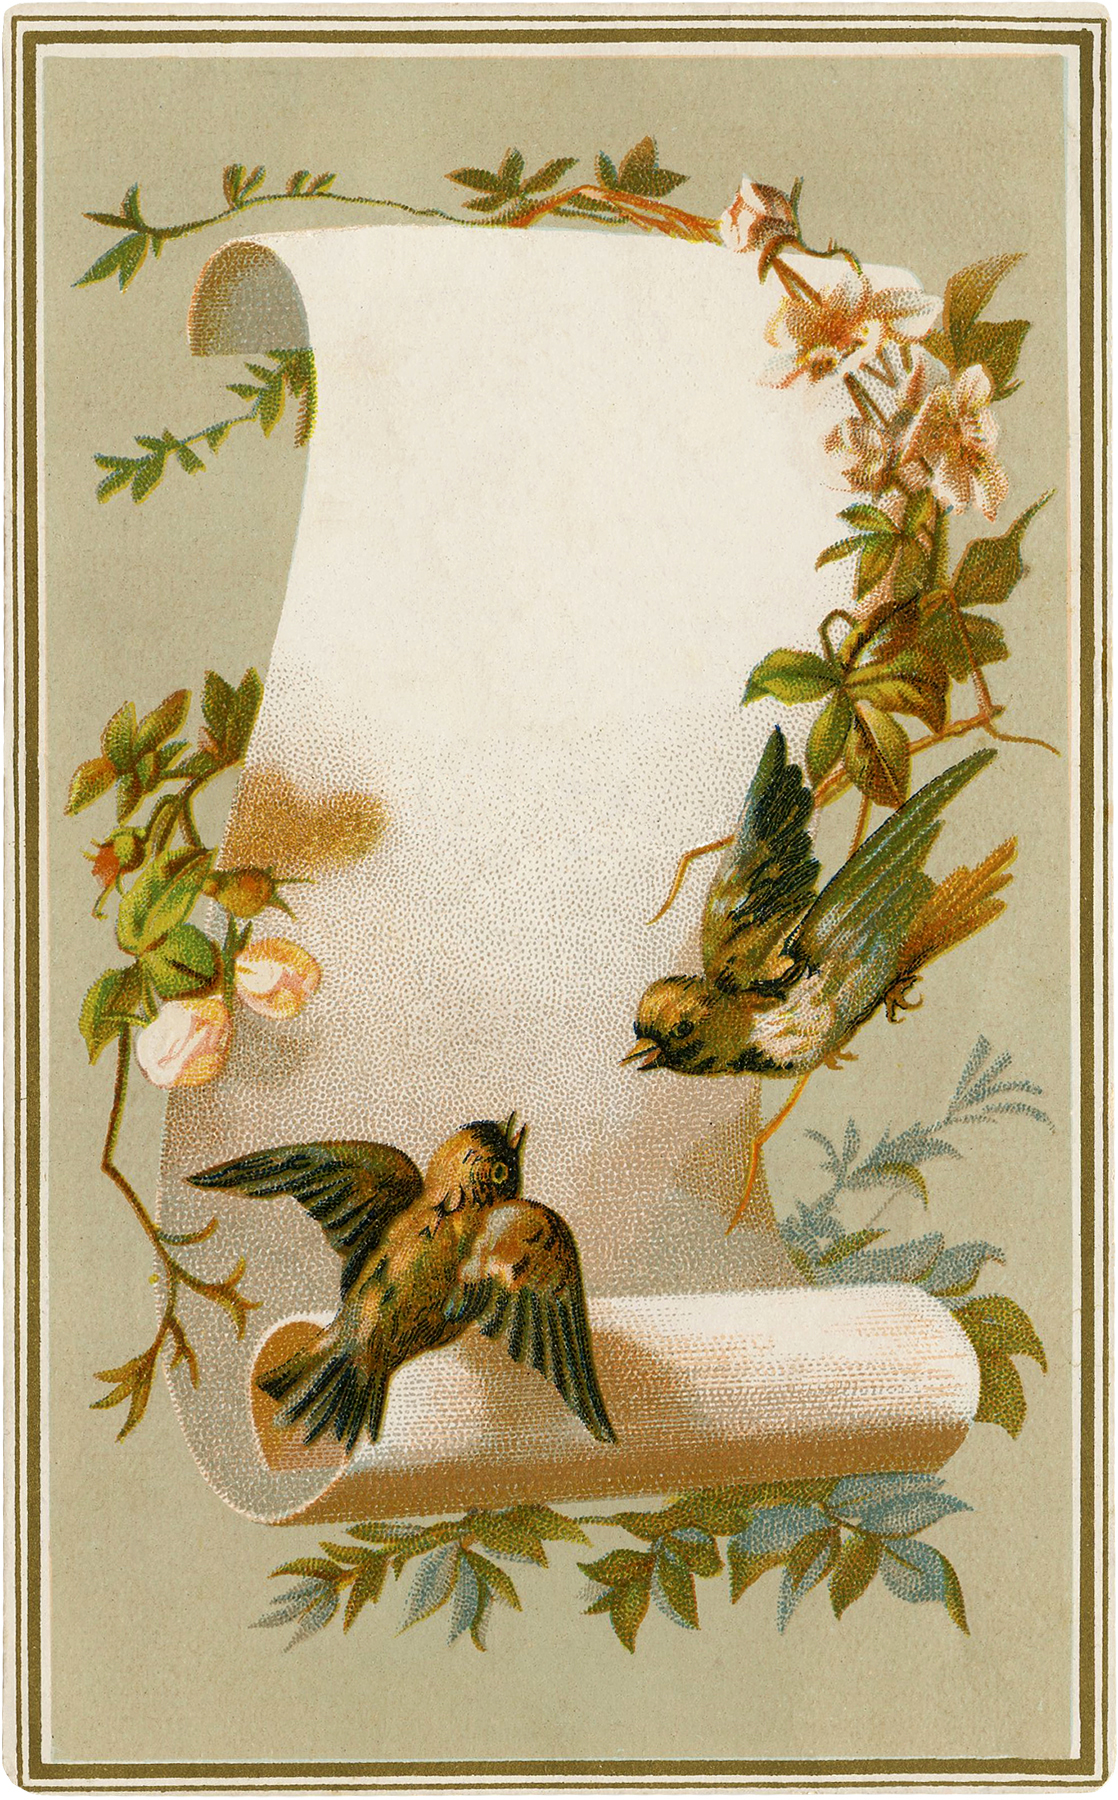 Vintage Birds Label Image